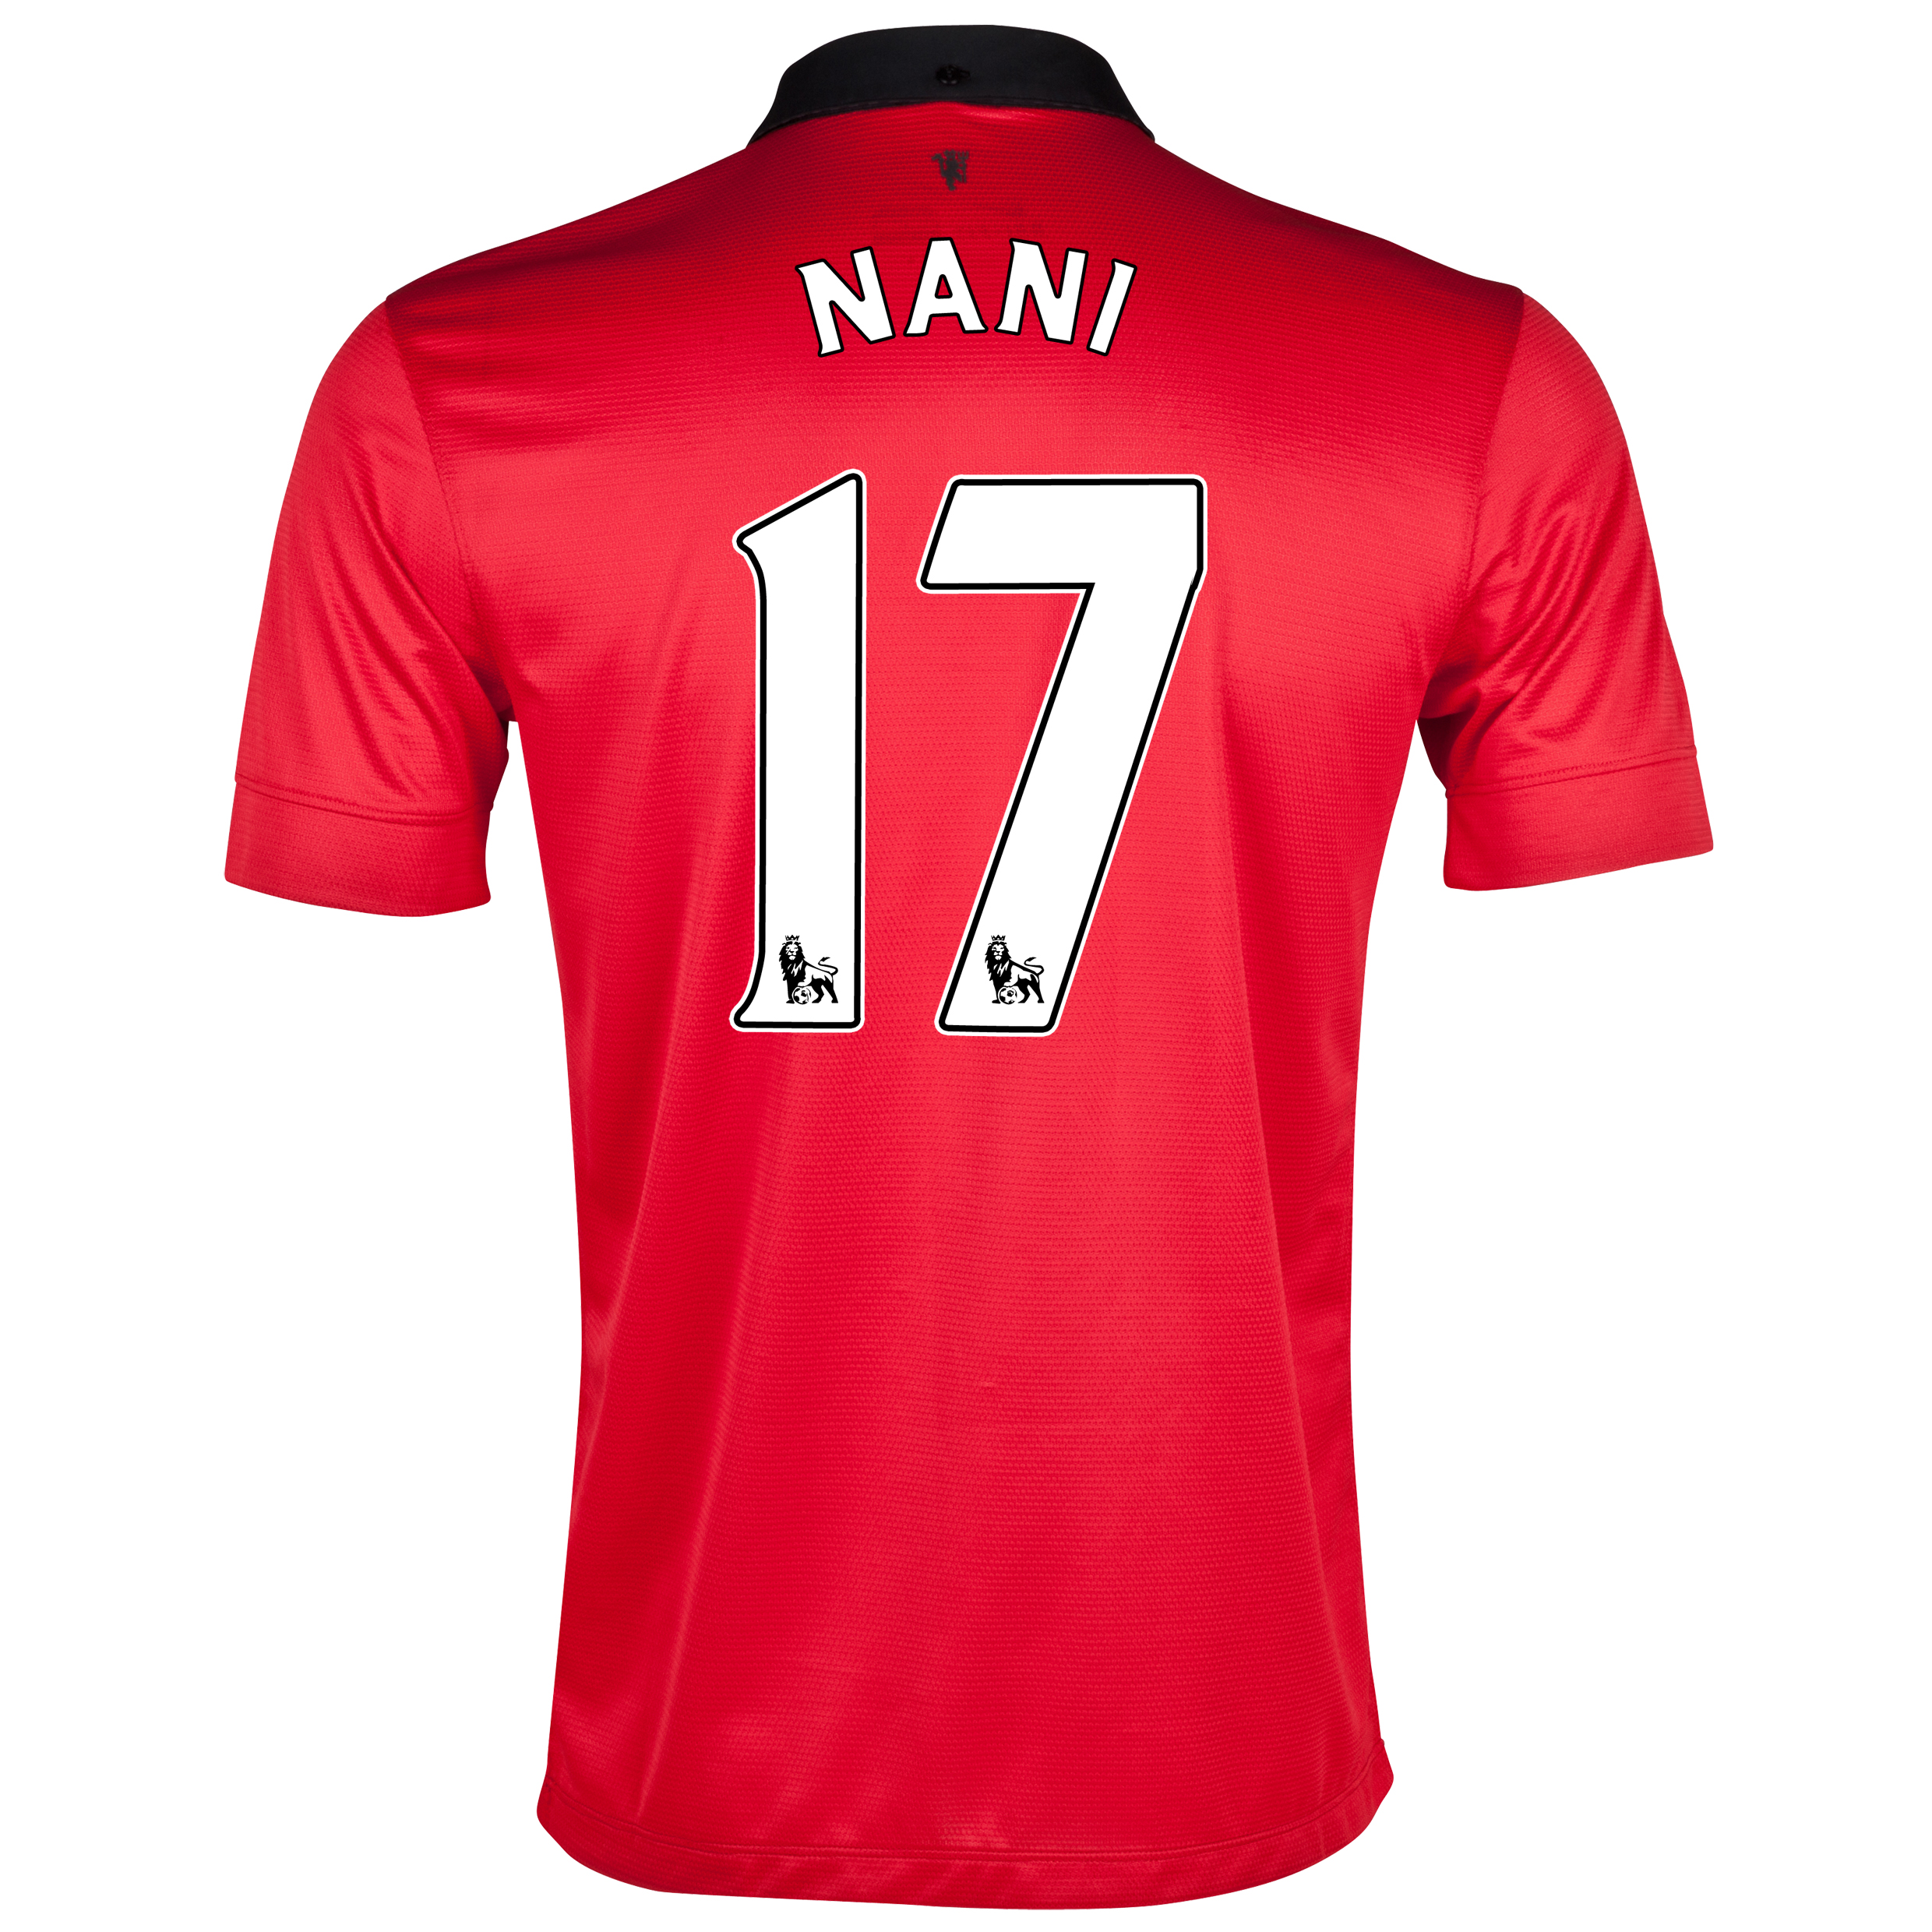 Manchester United Home Shirt 2013/14 with Nani 17 printing